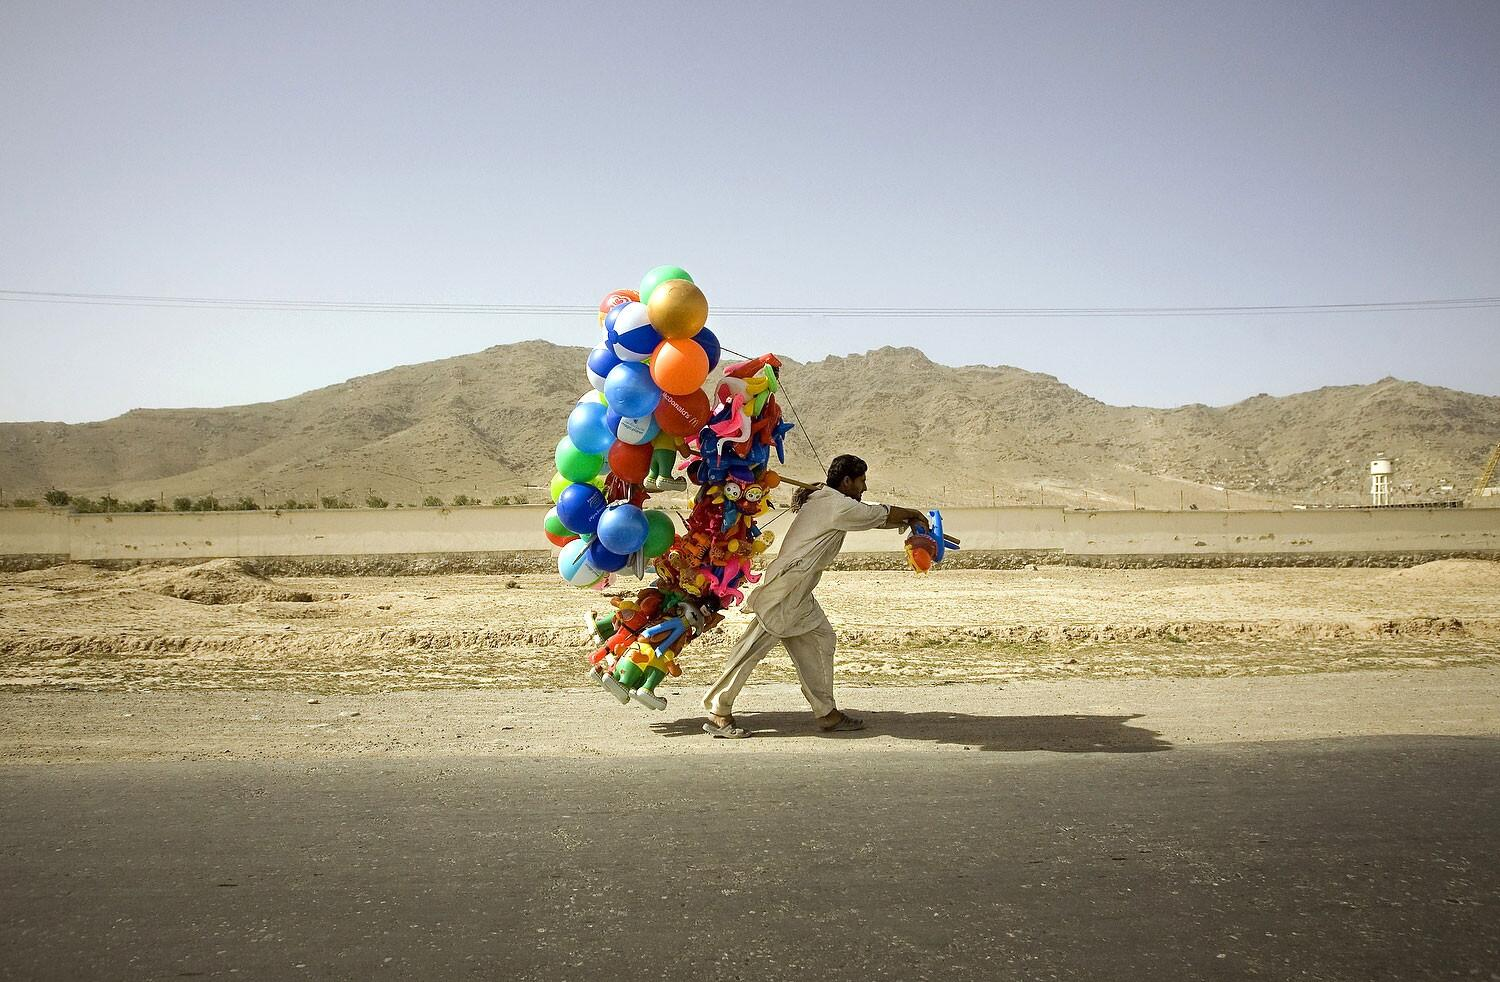 An Afghan man carries balloons alongside a road in the outskirts of Kabul. http://t.co/fJue53hqn3